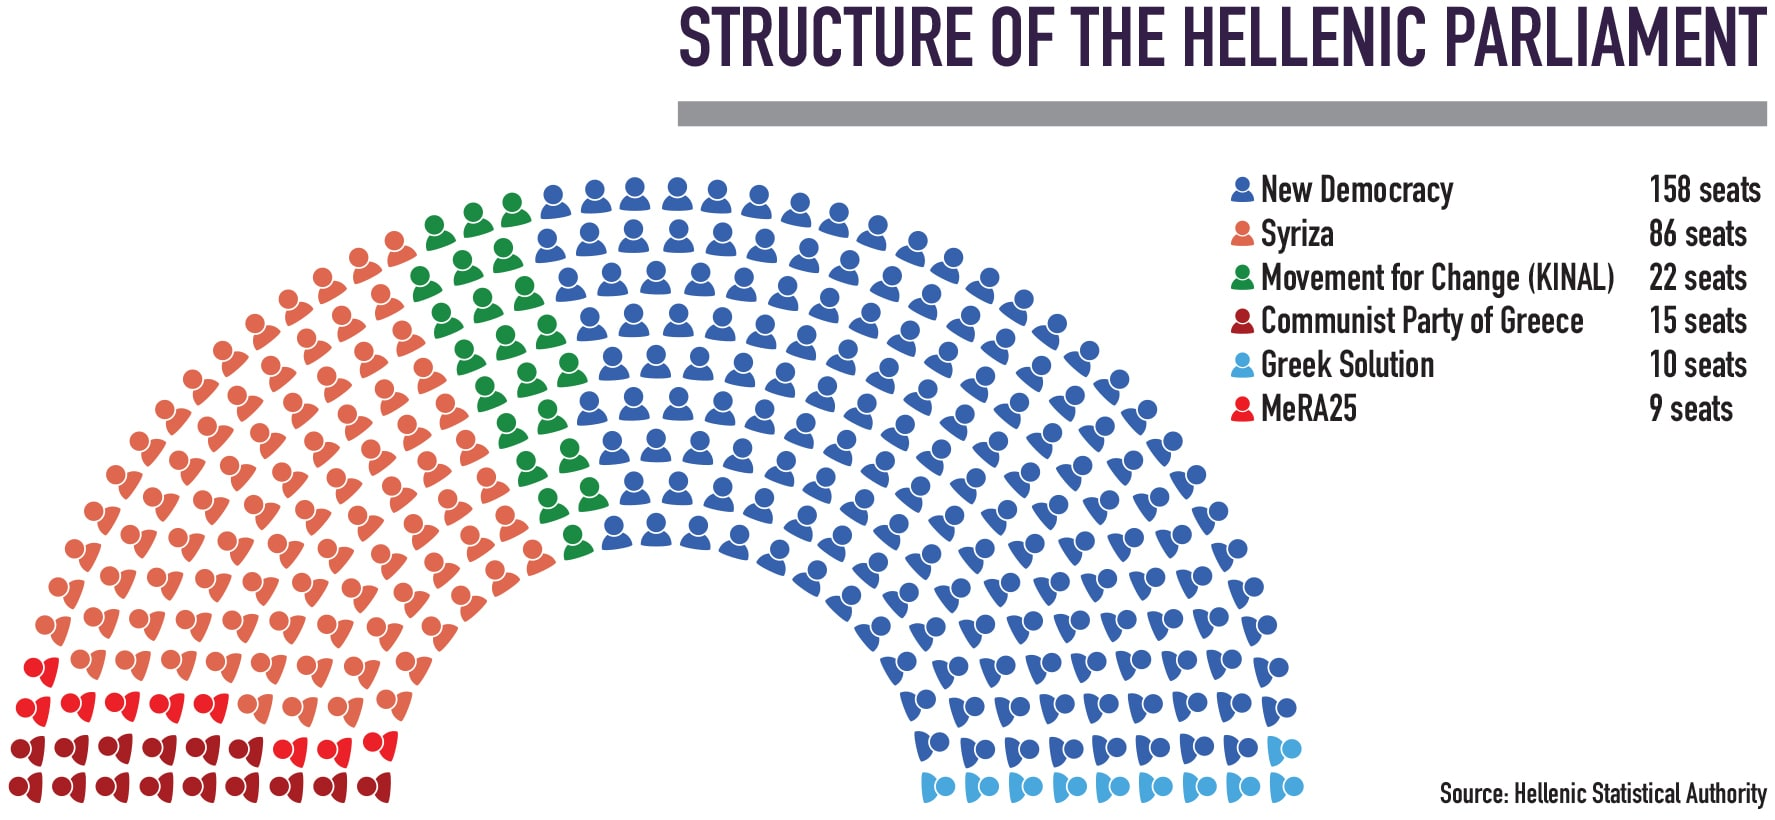 Structure of the Hellenic Parliament 2019, 2020